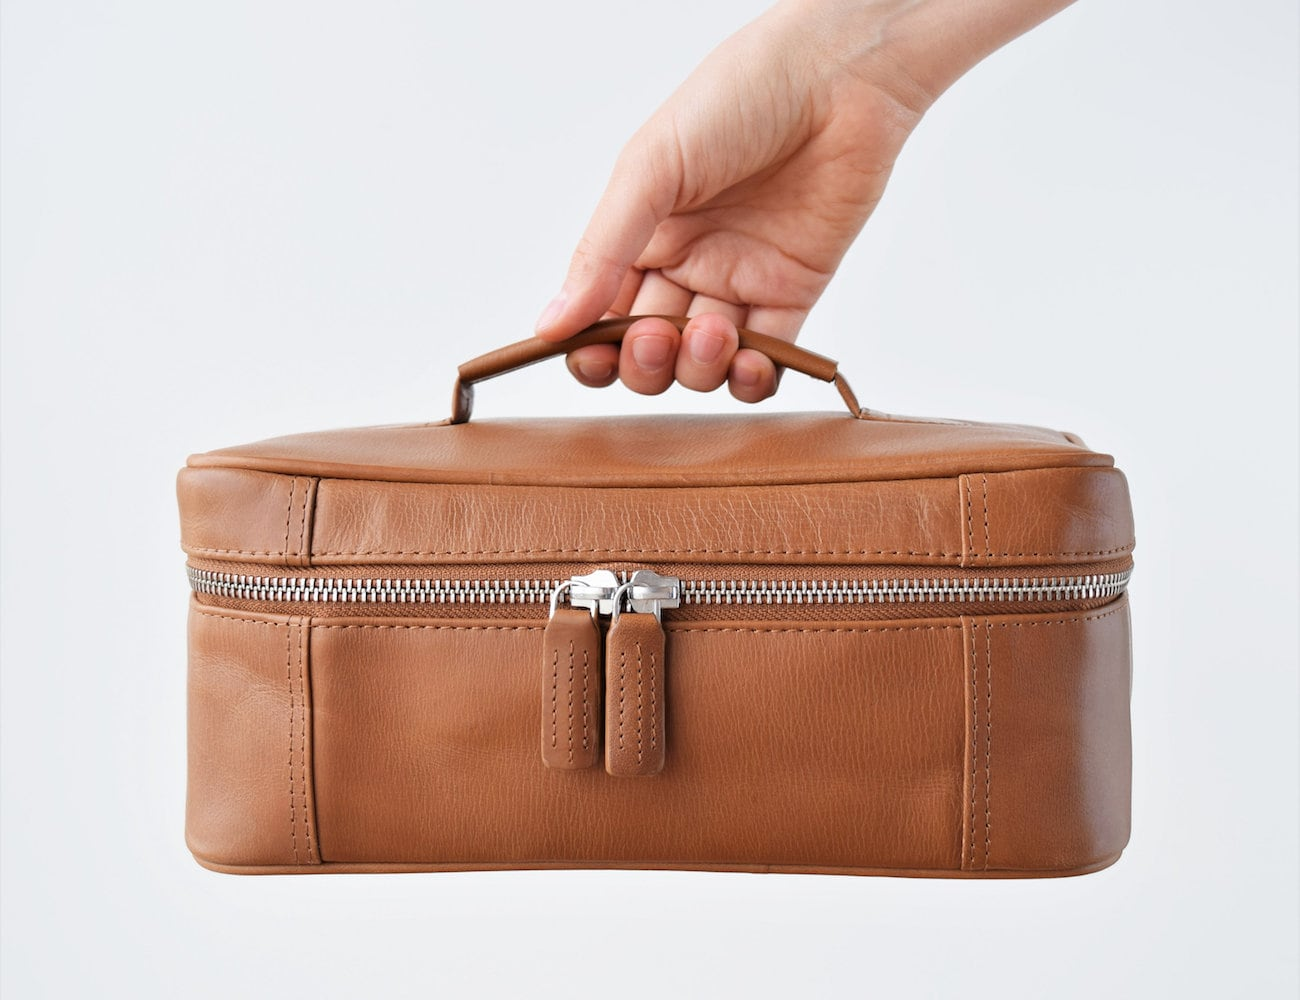 TheLeatherExpert Leather Travel Toiletry Bag